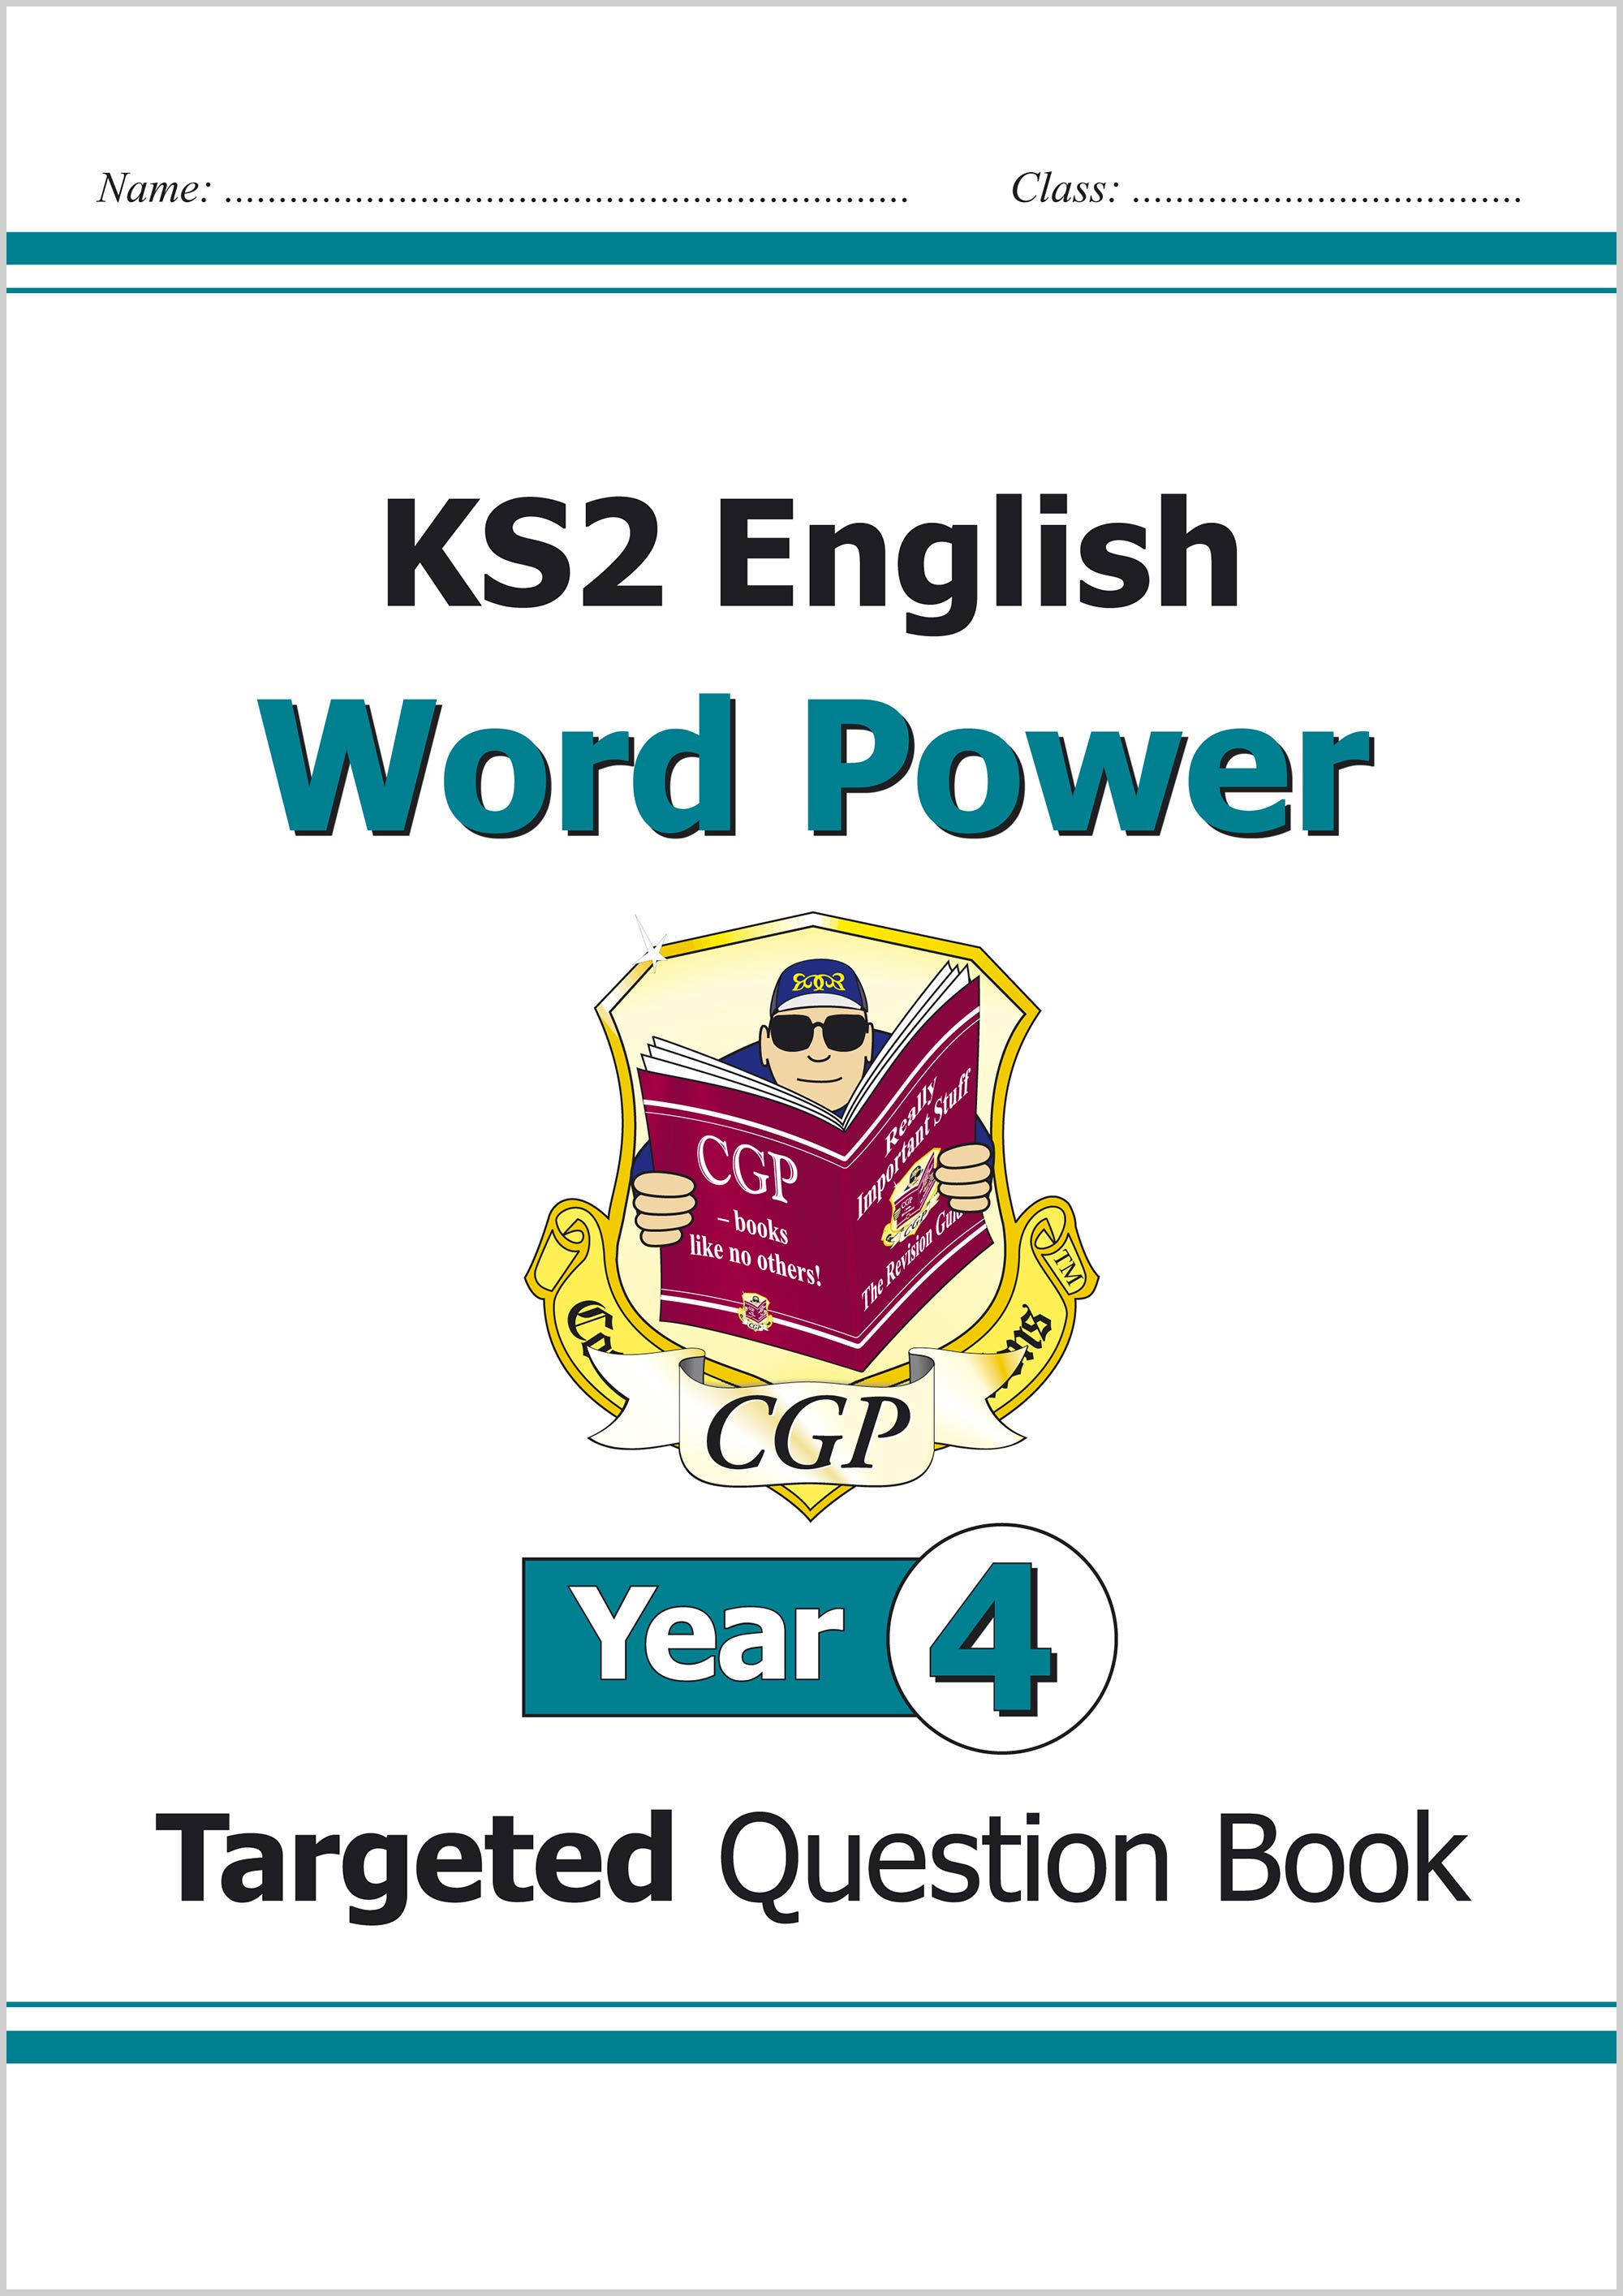 E4WPW21 - KS2 English Targeted Question Book: Word Power - Year 4